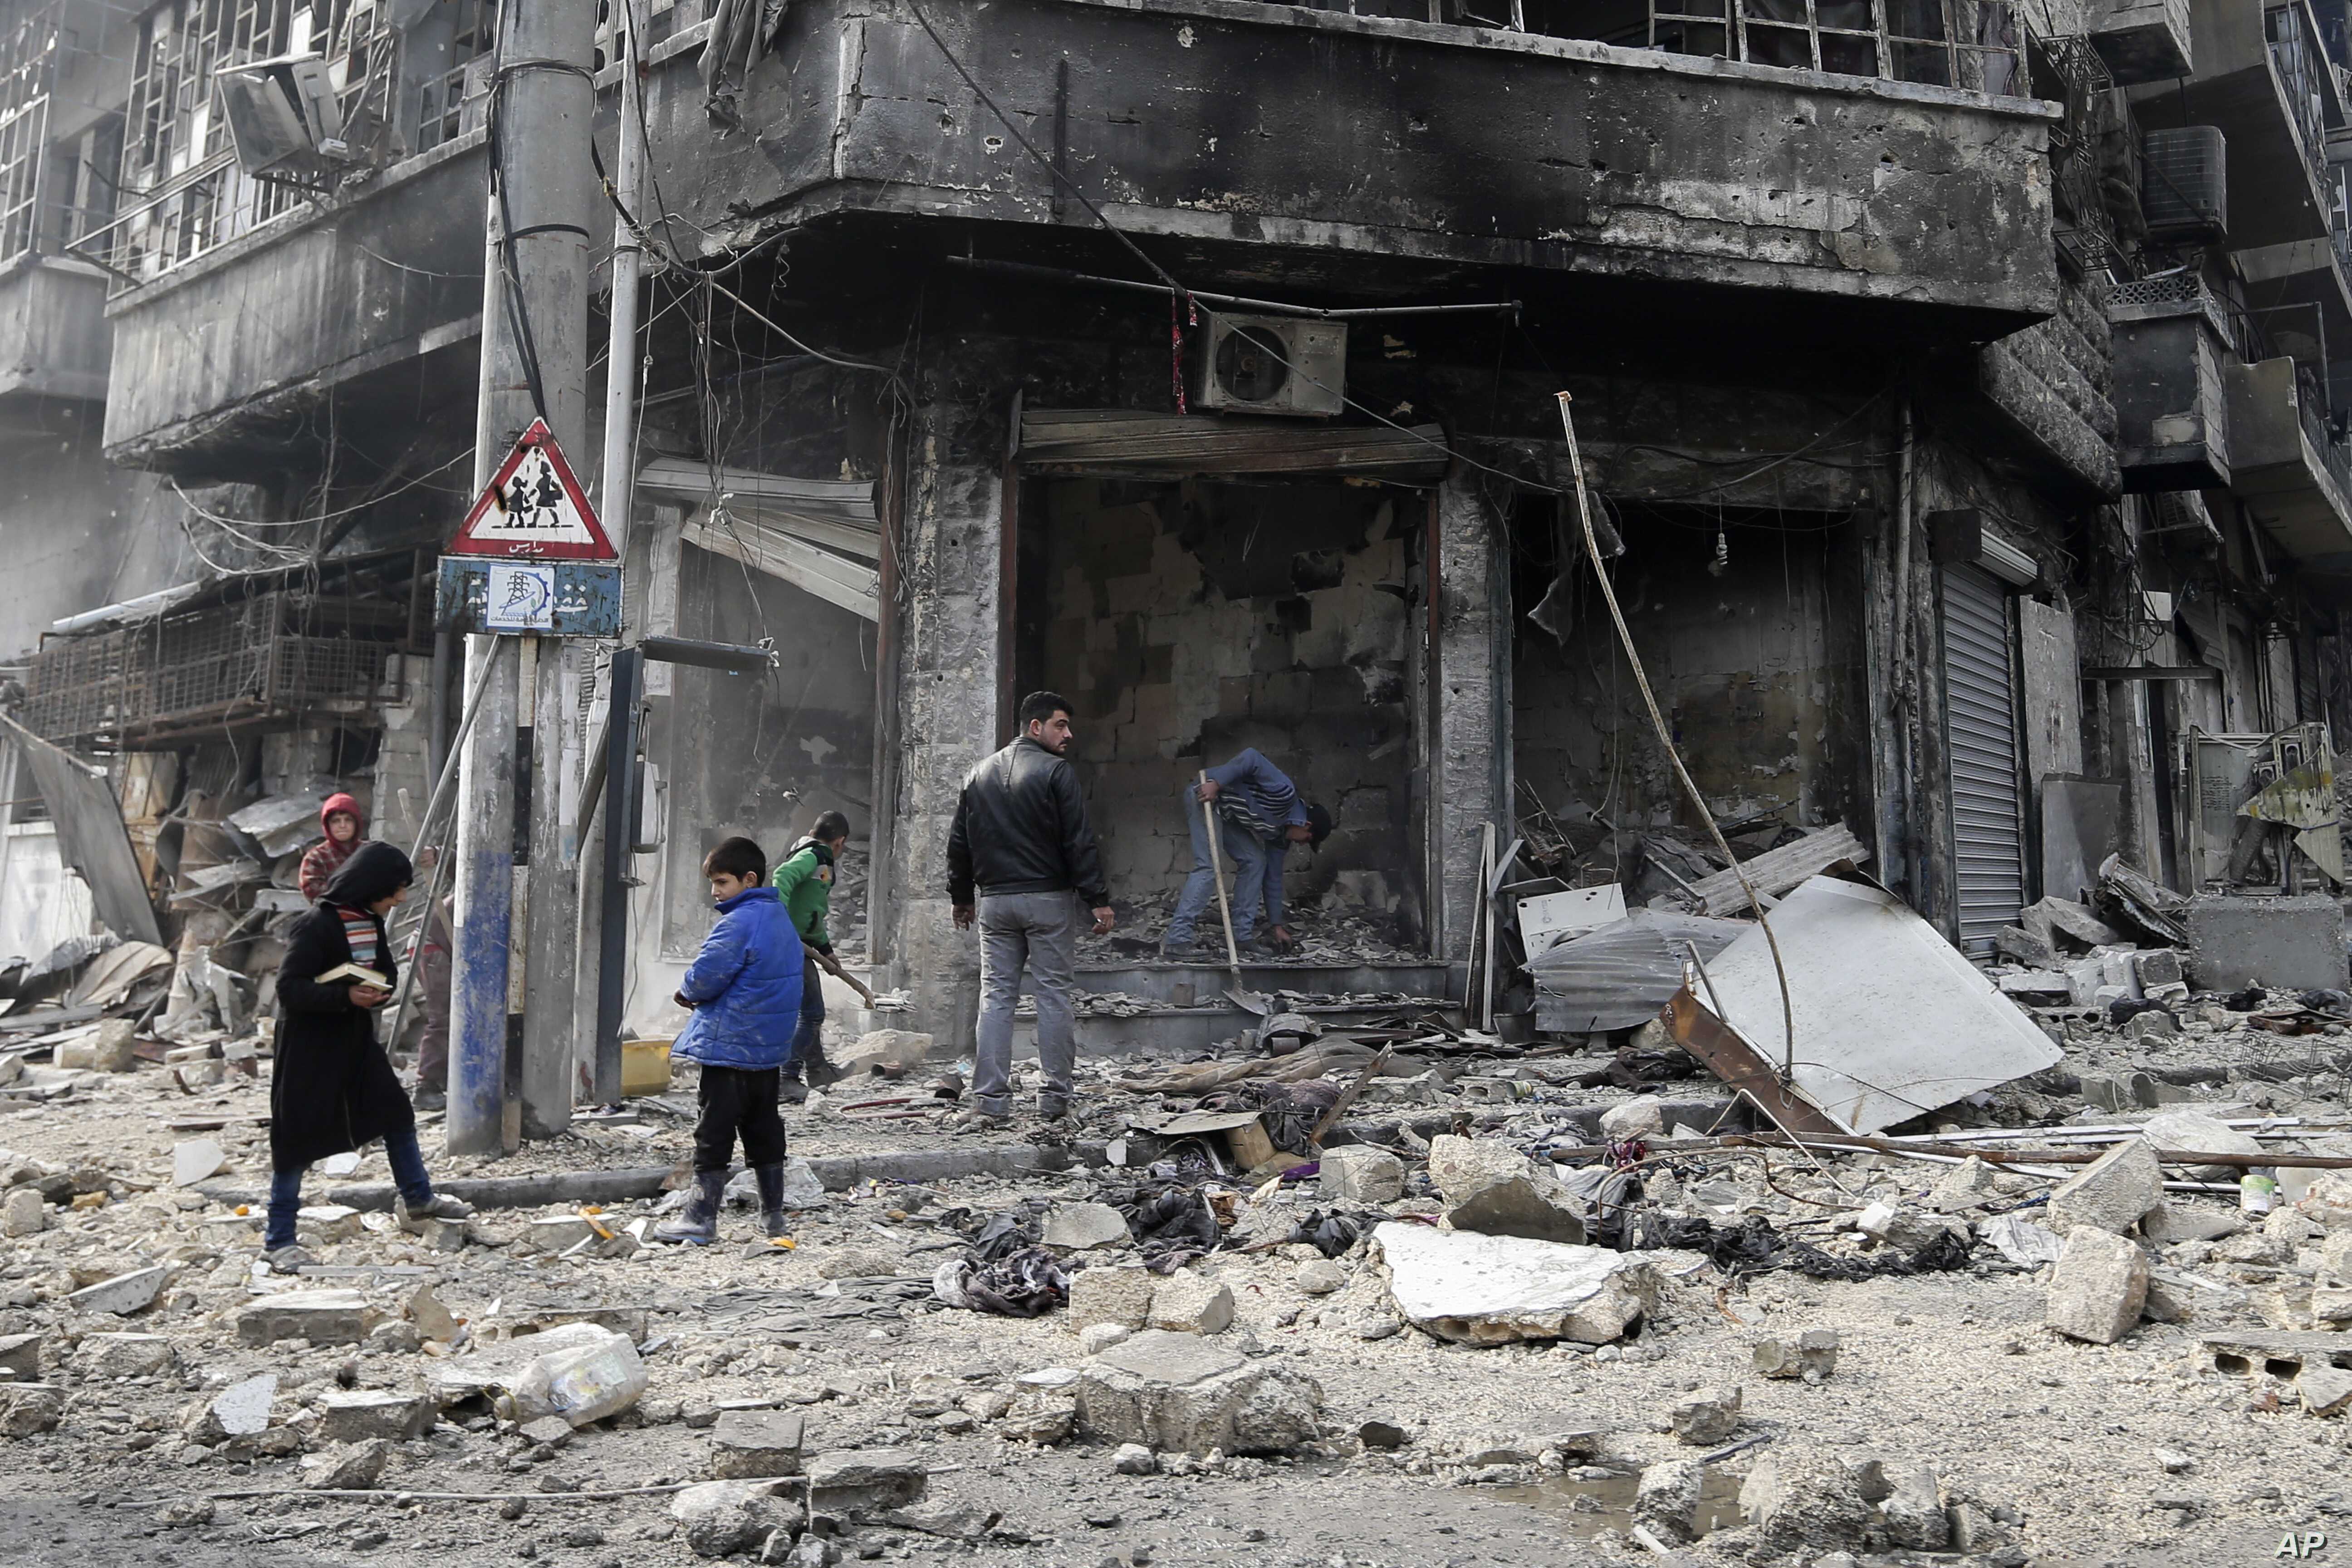 FILE - Syrian children remove rubble in the once rebel-held Bustan al-Qasr neighborhood in eastern Aleppo, Syria. Aleppo, Syria's largest city, was widely brought to ruin by years of war, and now with Russia and Turkey leading peace efforts, intern...